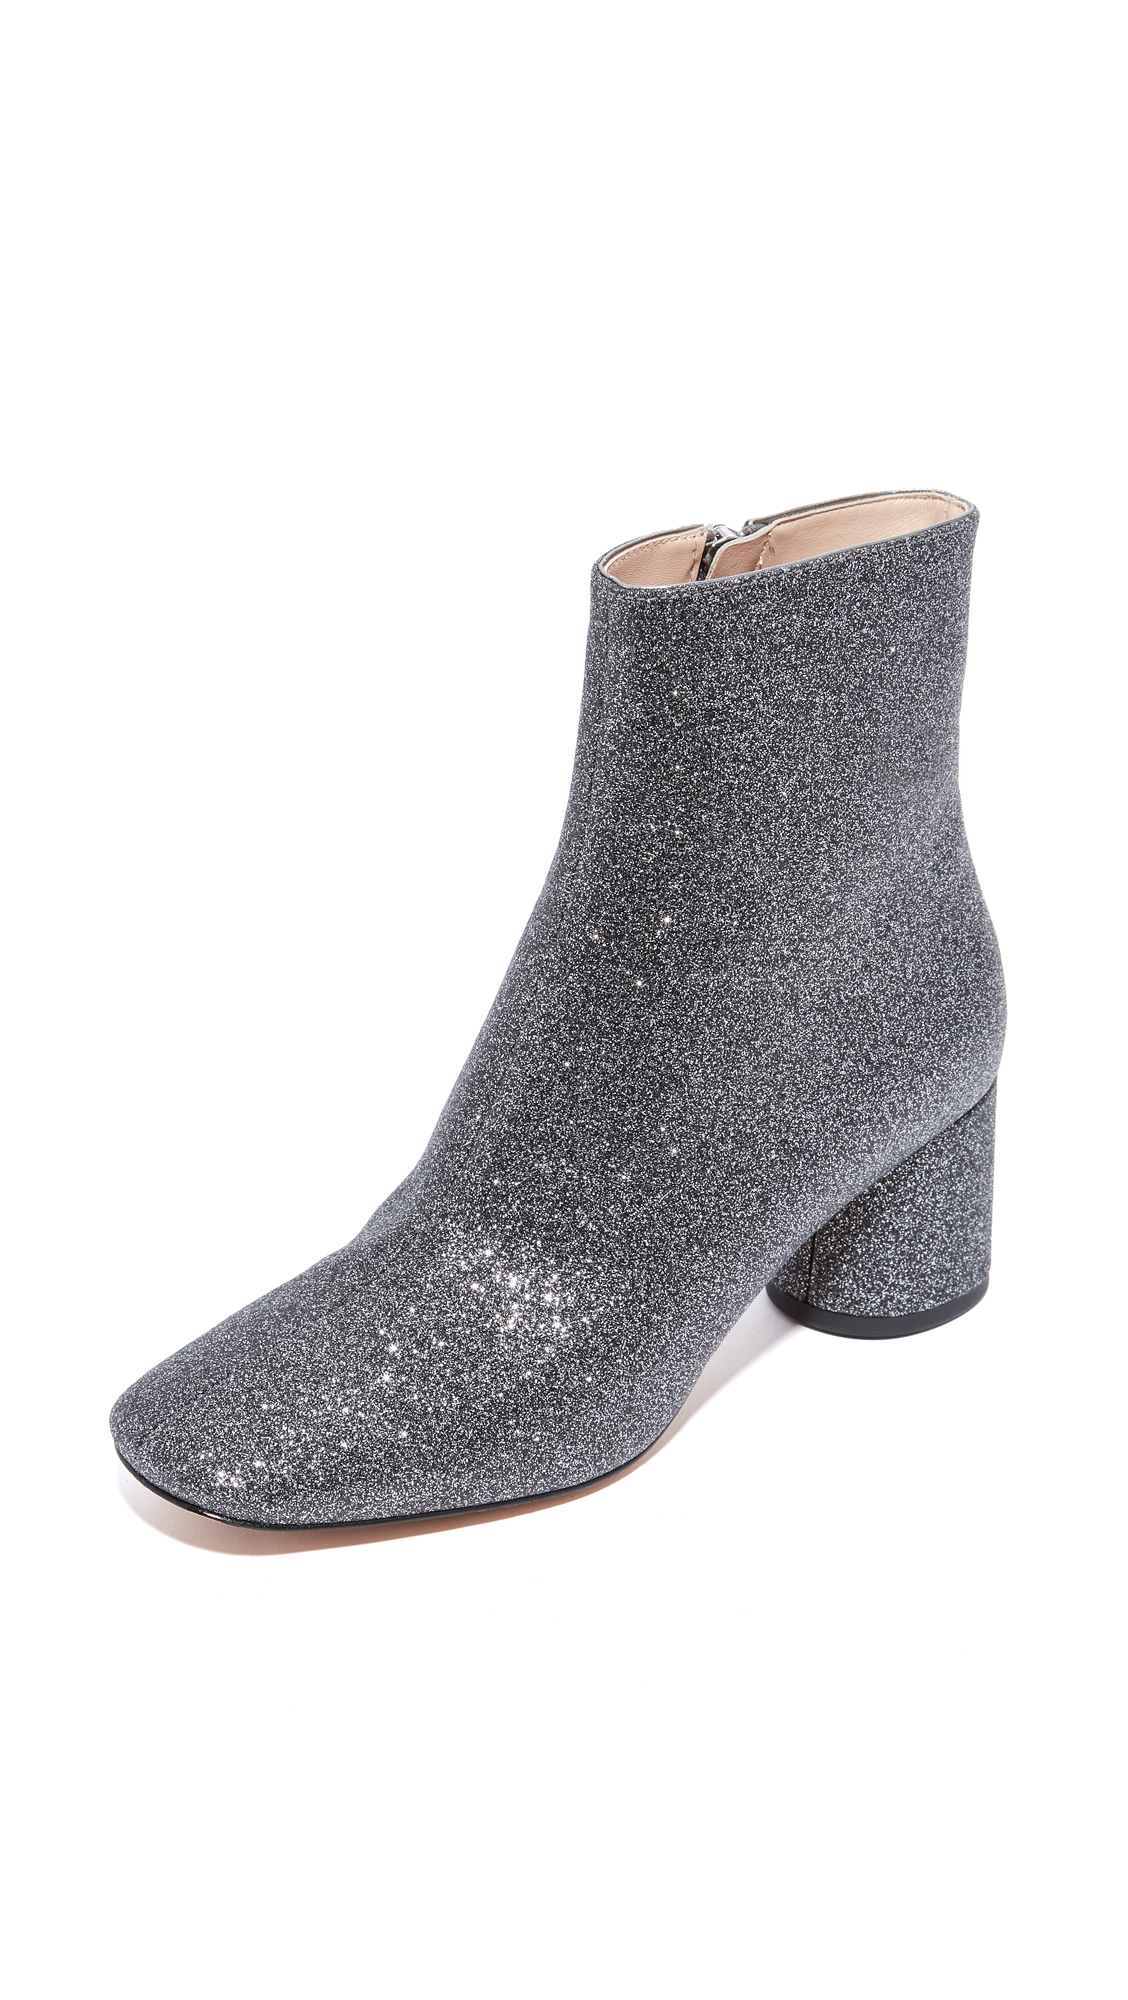 Shimmering glitter covers these glamorous Marc Jacobs booties. Exposed side zip. Covered, round heel. Leather sole. Fabric: Glitter coated weave. Imported, China. Measurements Heel: 2.25in / 55mm Shaft: 5.5in / 14cm Circumference: 9.5in / 24cm. Available sizes: 35.5,36,36.5,37,37.5,38,38.5,39,39.5,40